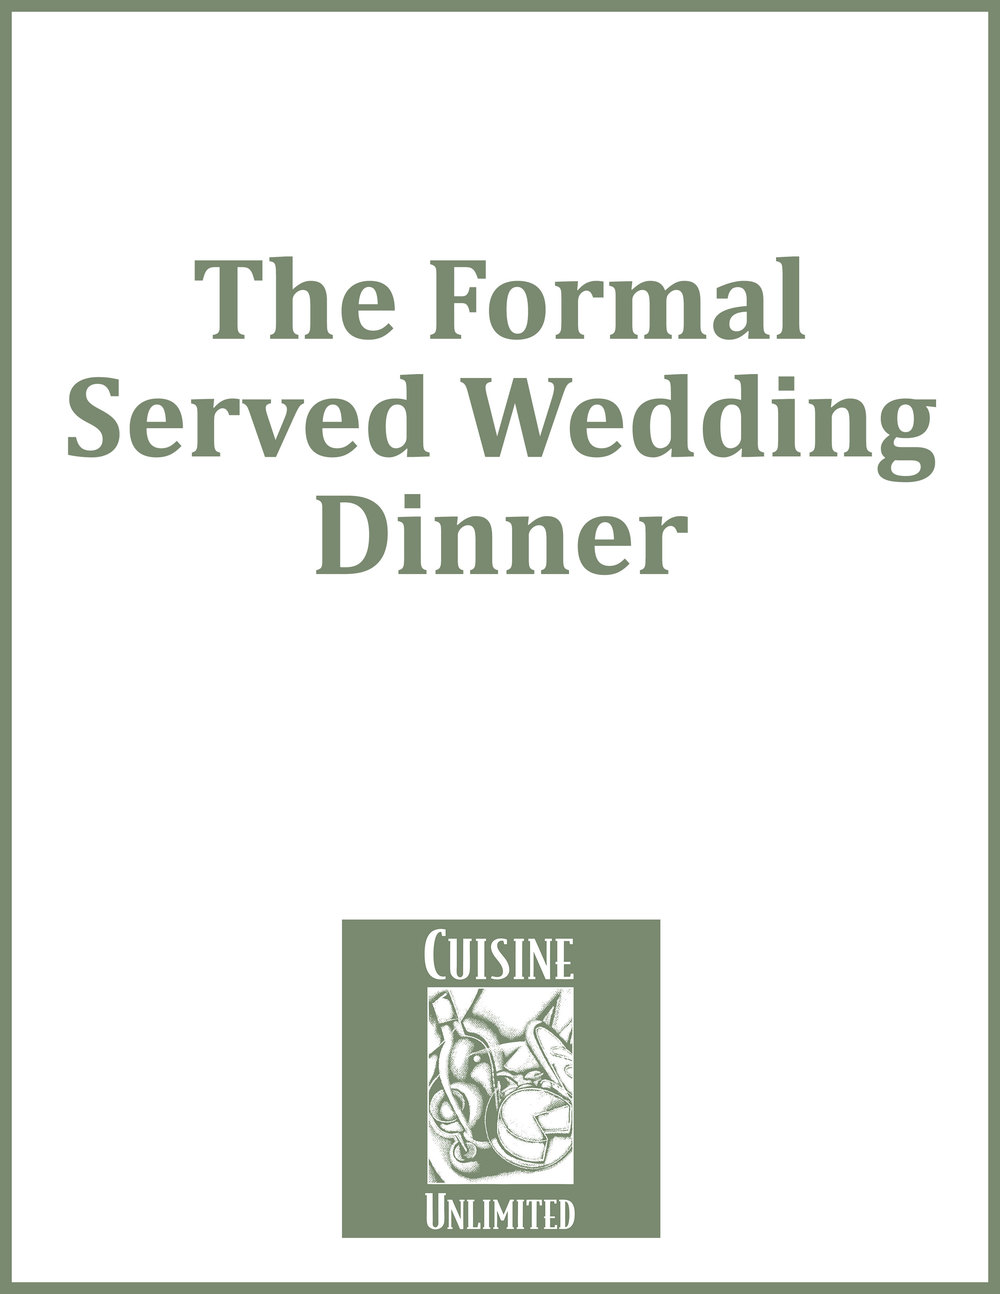 The Formal Served Wedding Dinner